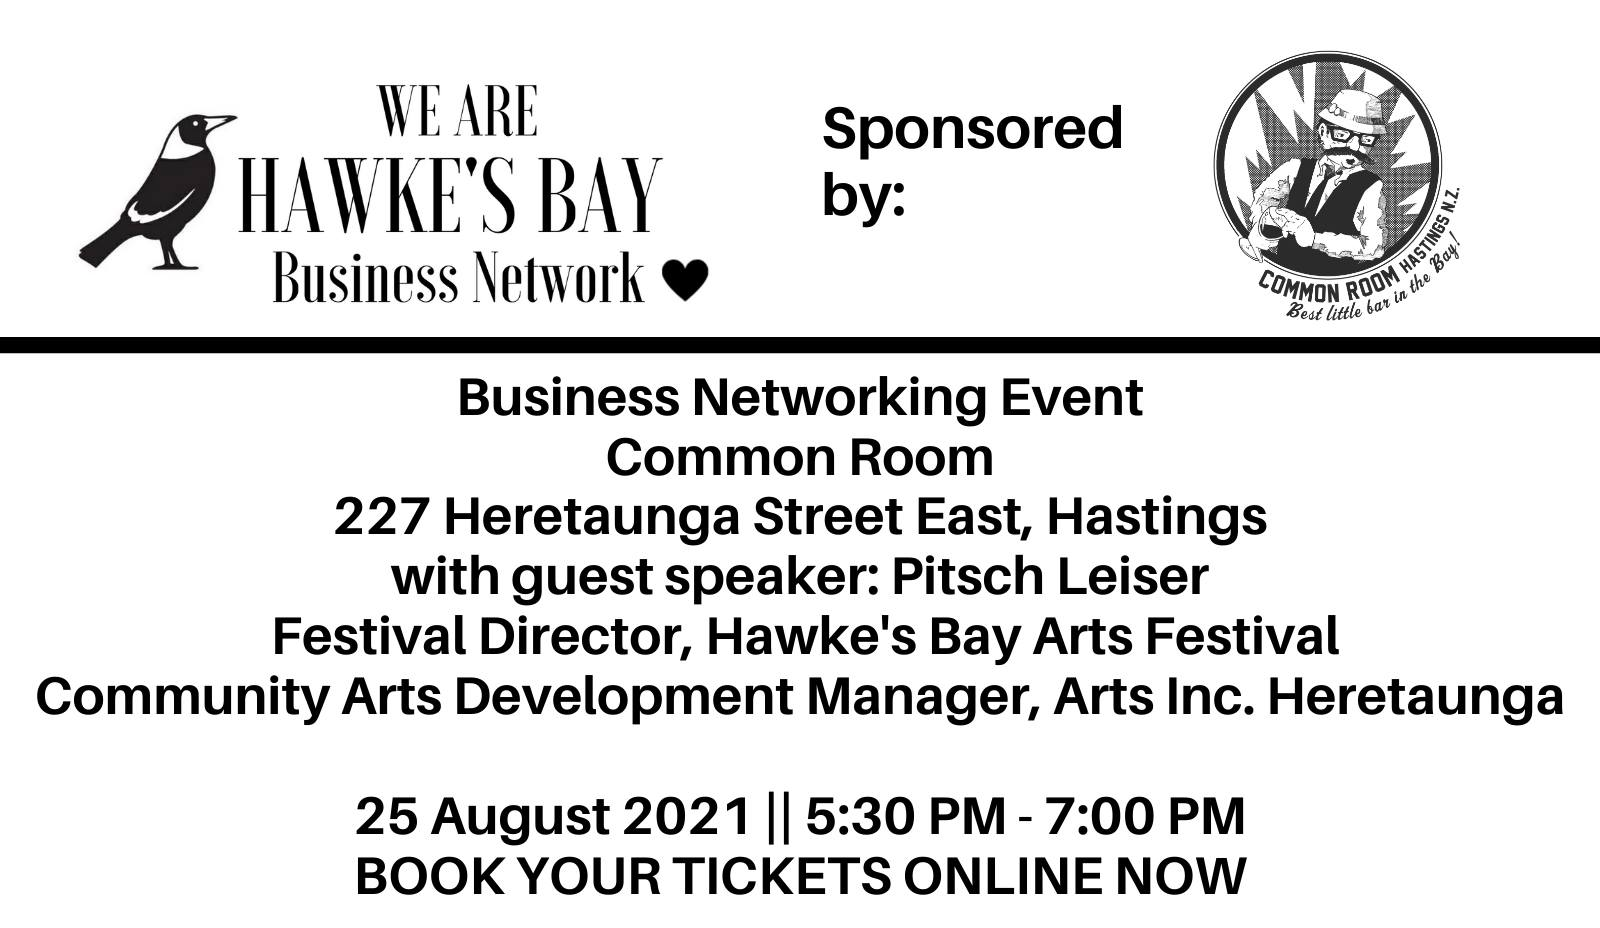 Business Networking event – 25 August 2021 at Common Room